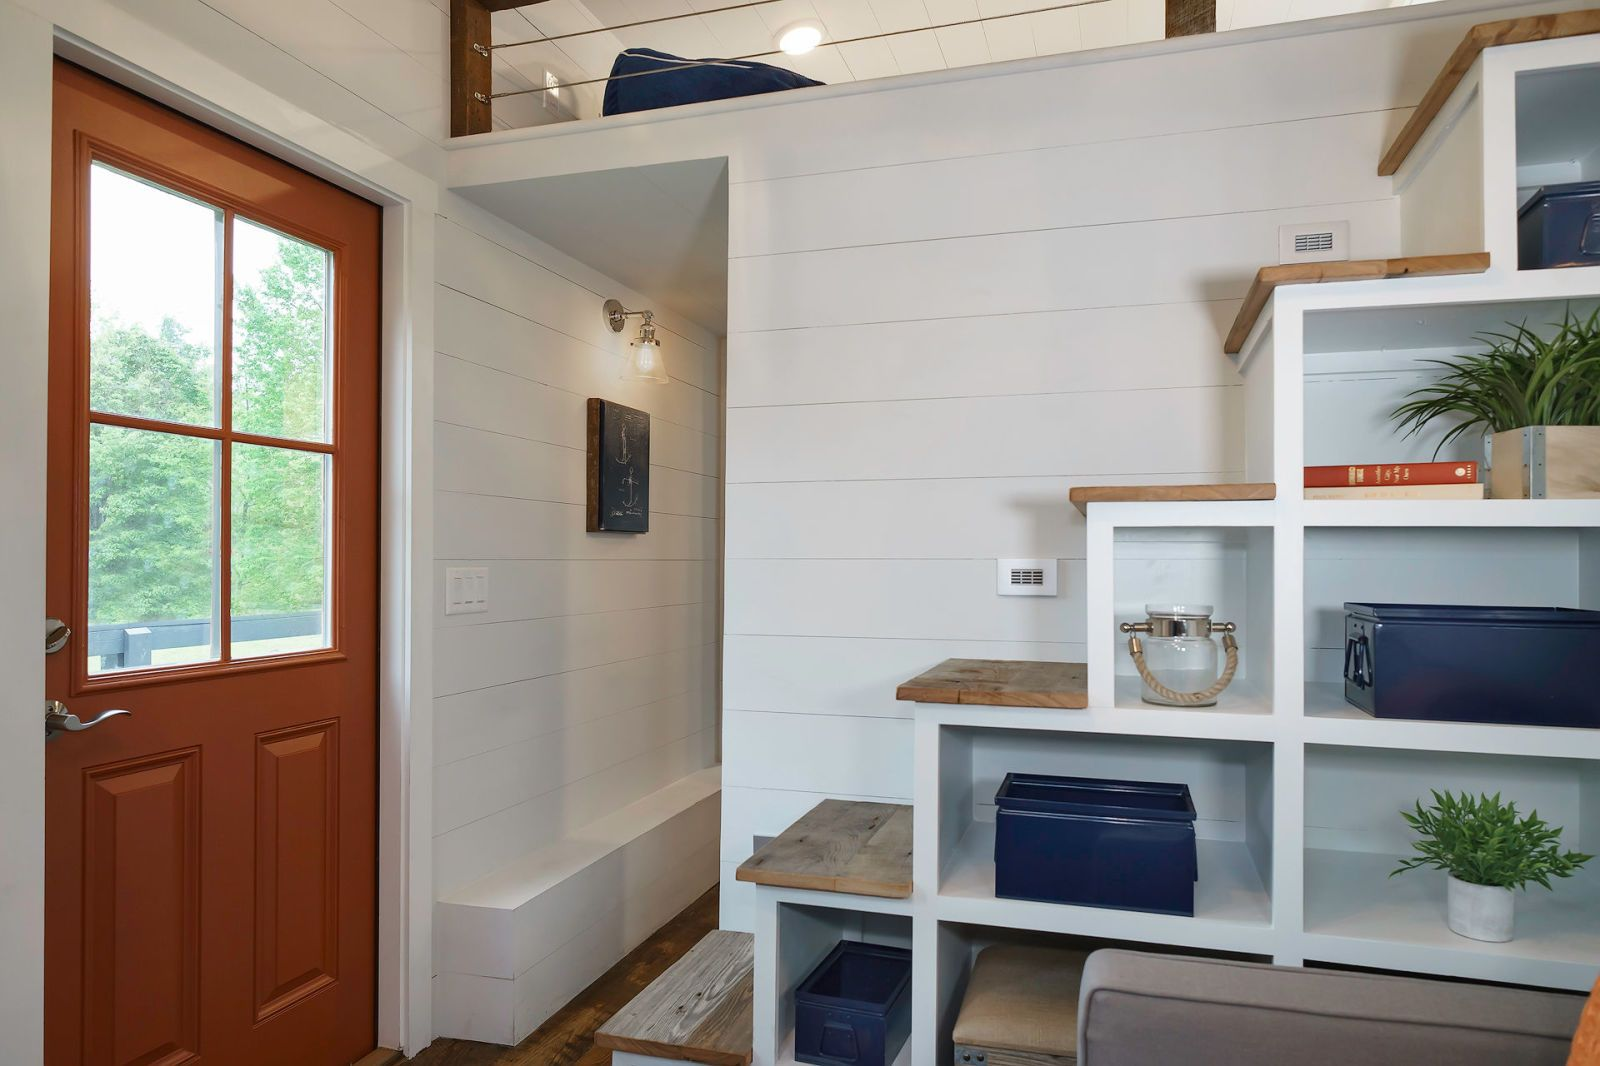 This Tiny House Breaks a Major Decorating